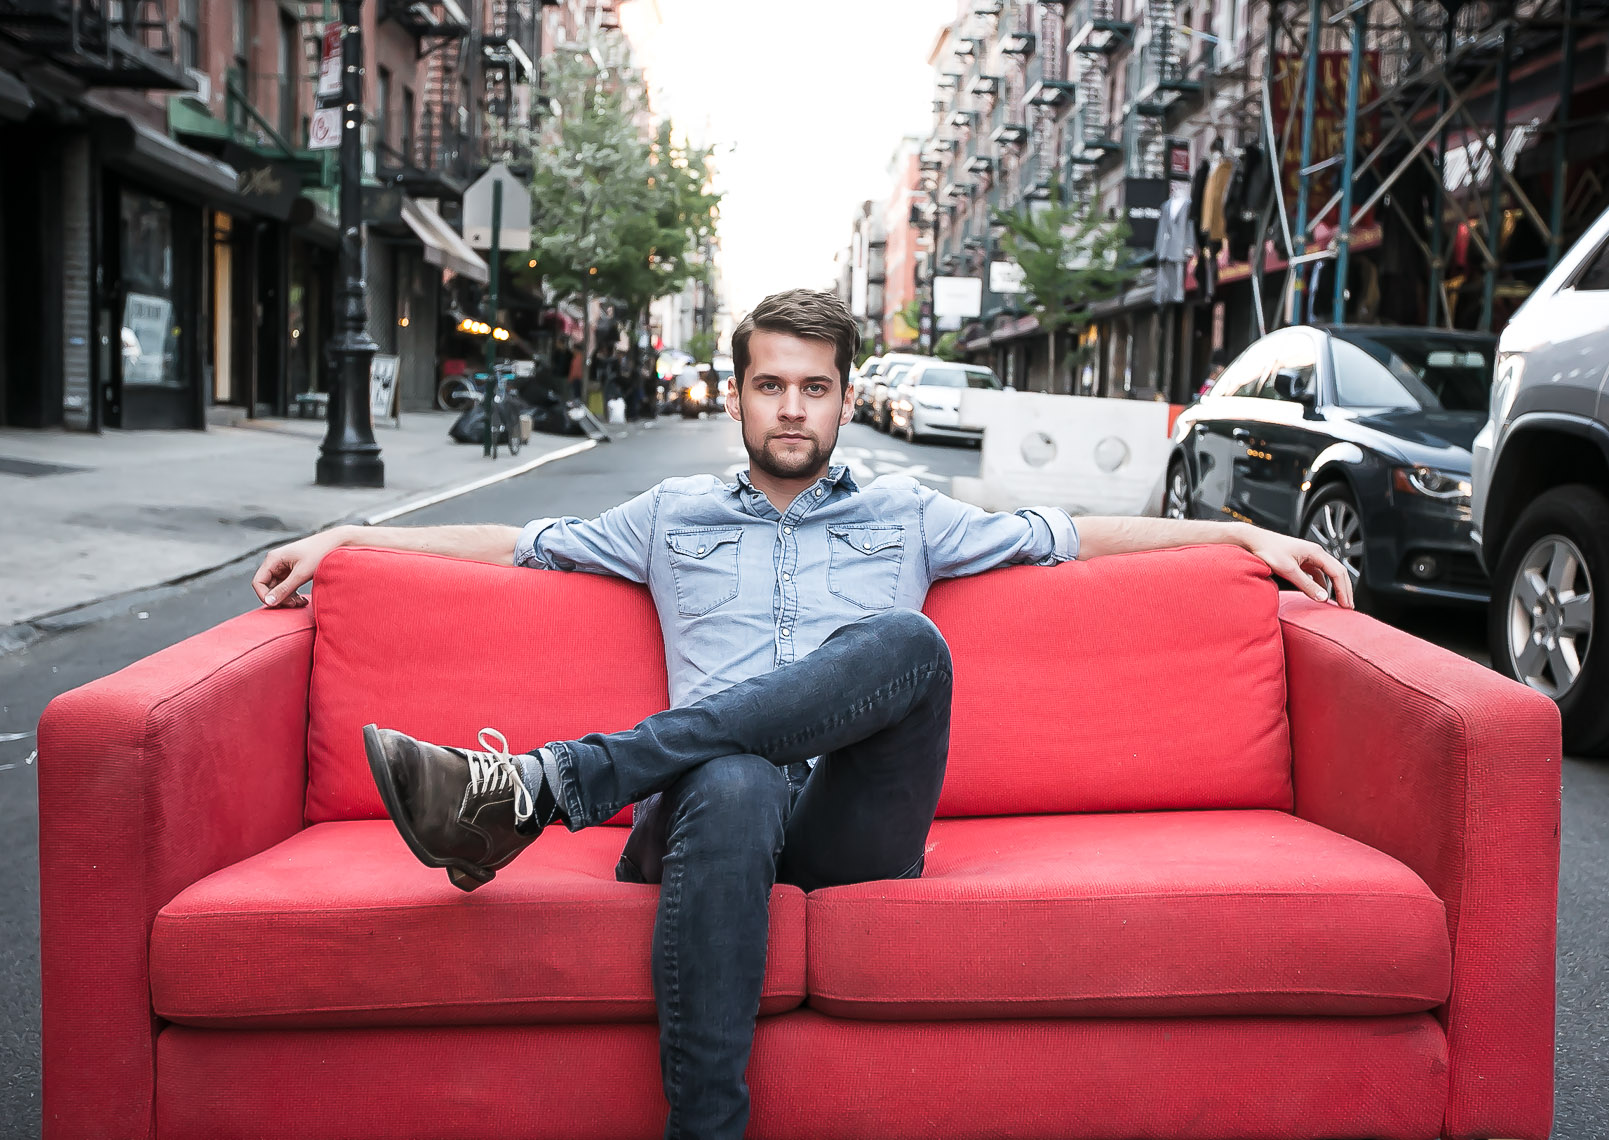 Matt Hires by music portrait photographer Deborah Lowery